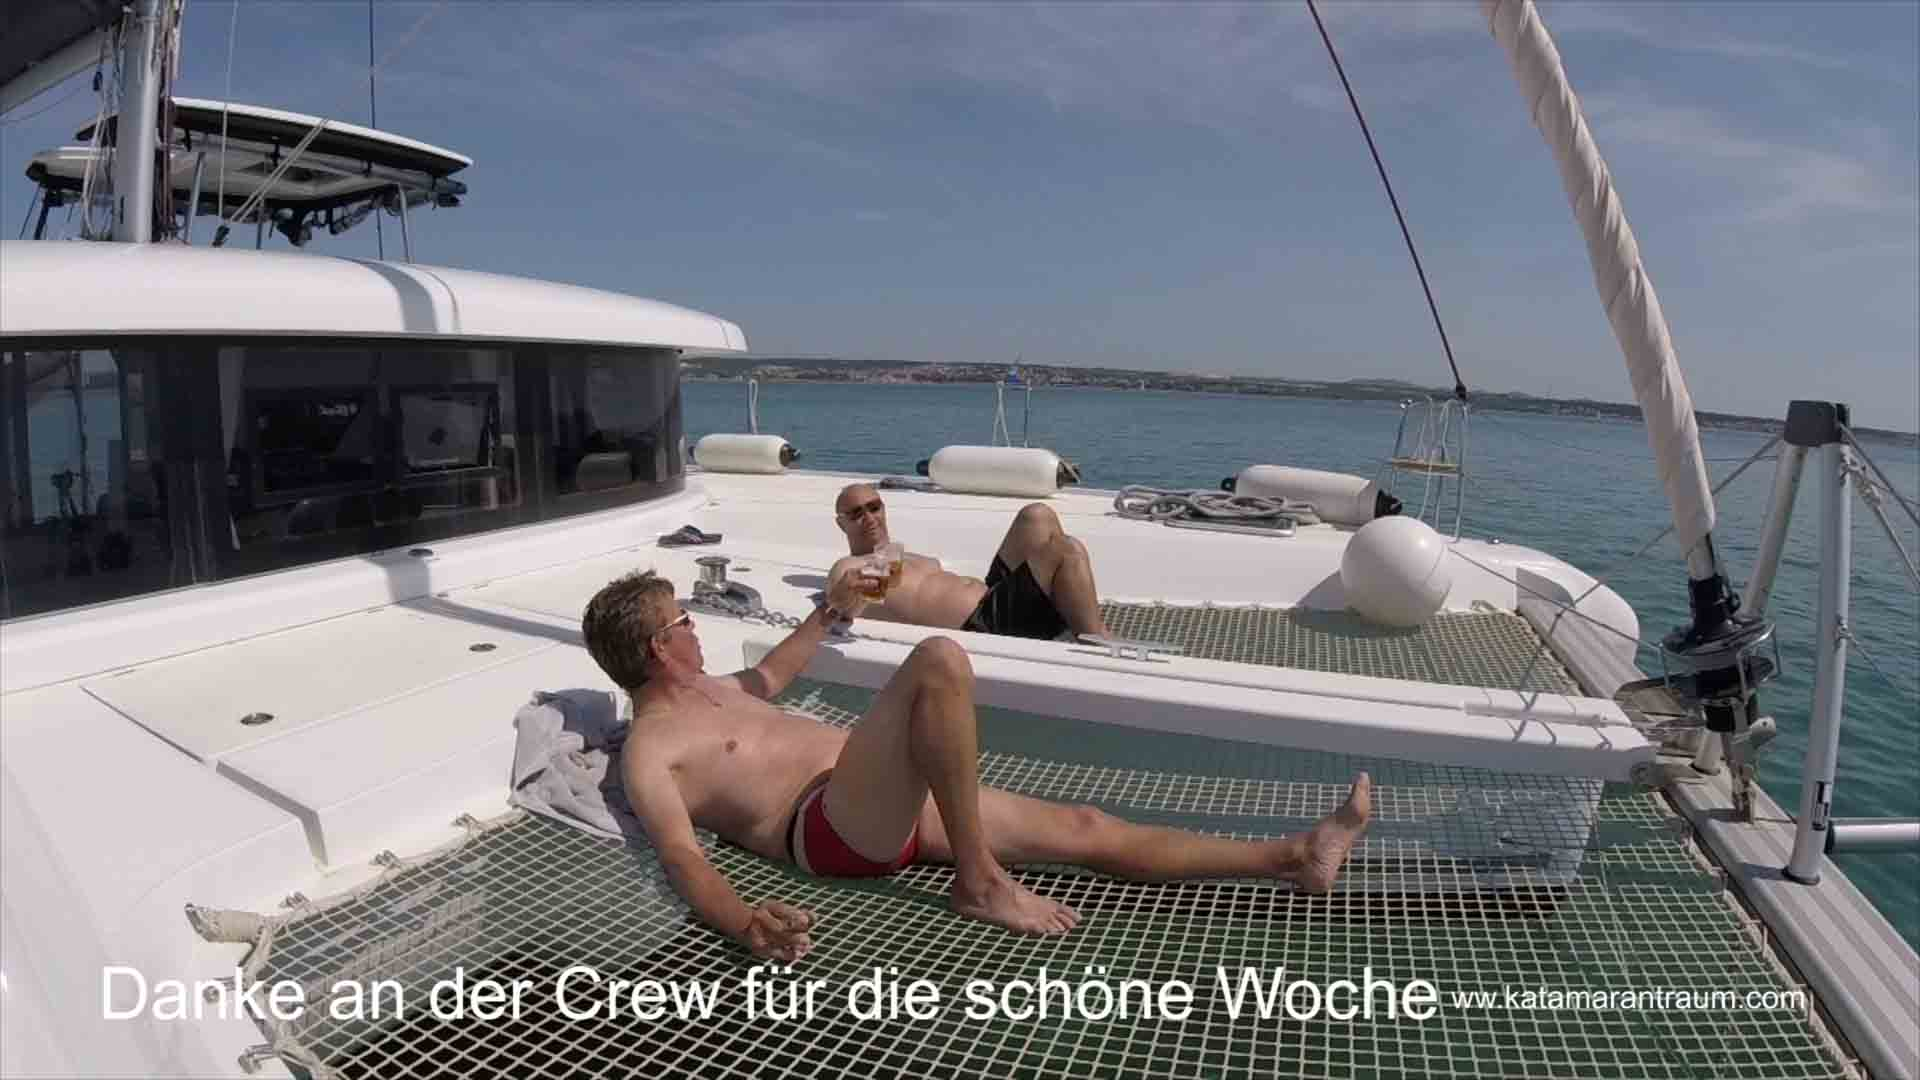 As a reward and completion of the catamaran training week skipper and guest Attila (Eurowings pilot) have a beer